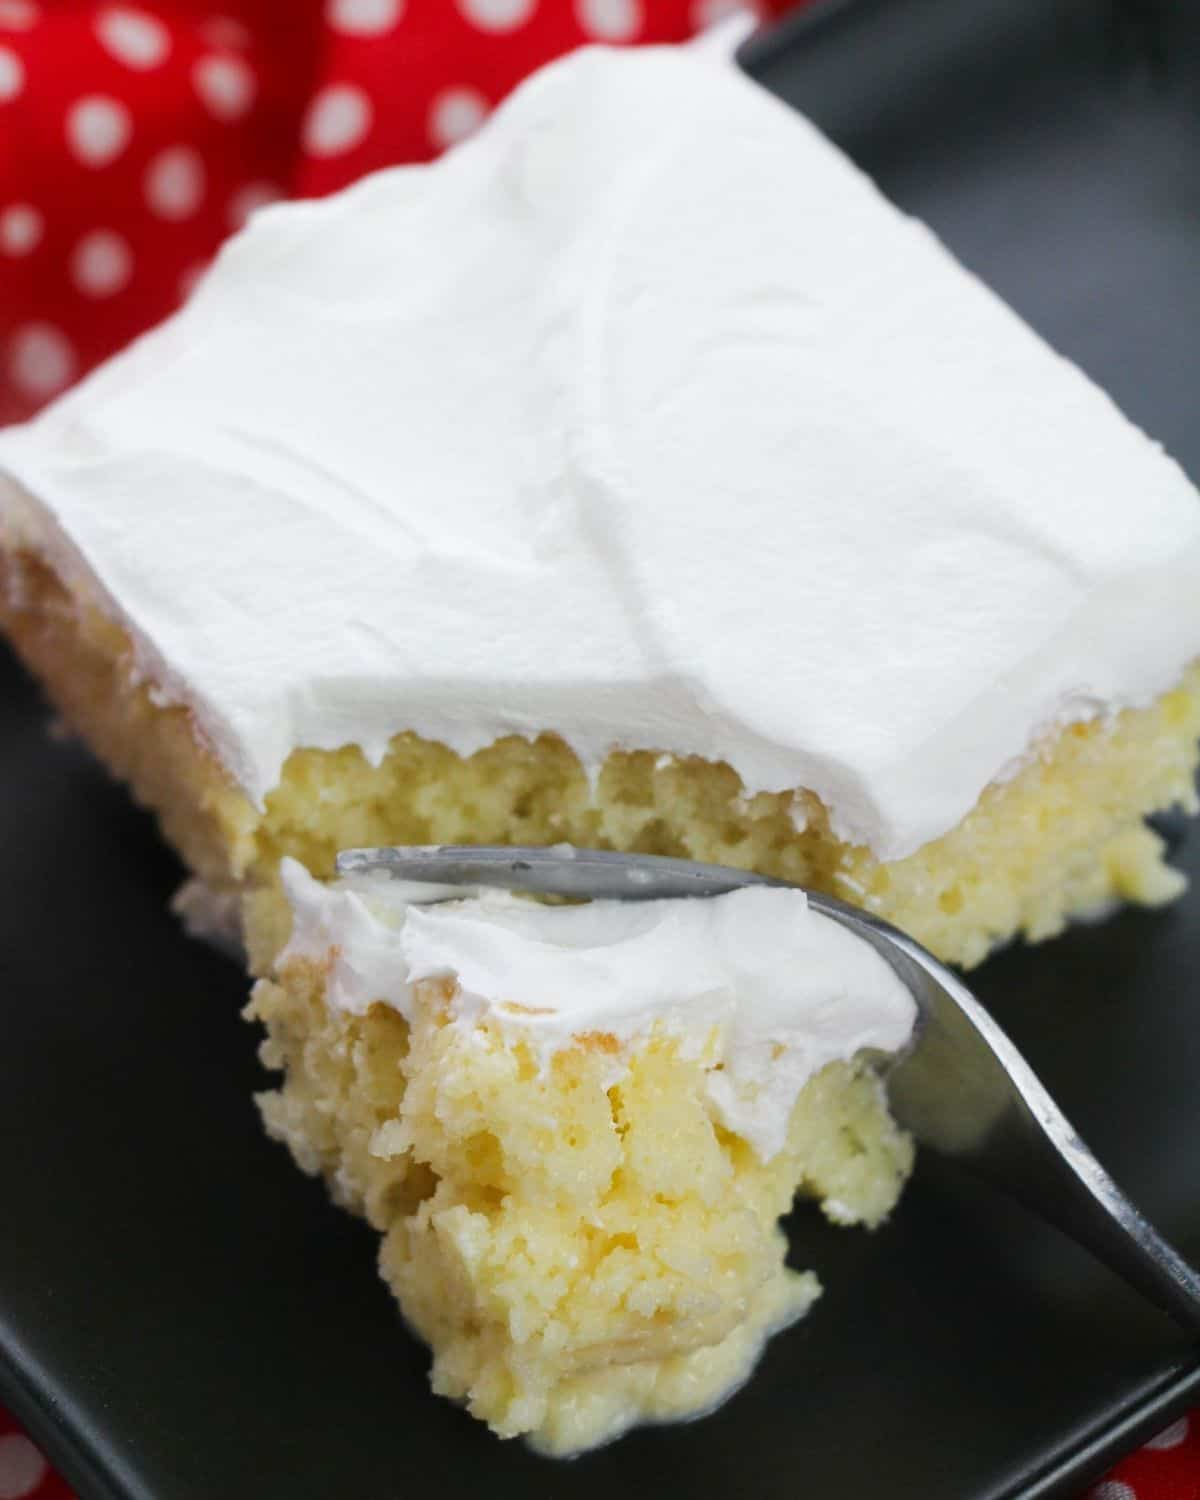 A slice of cake with a whipped cream frosting on a black plate.